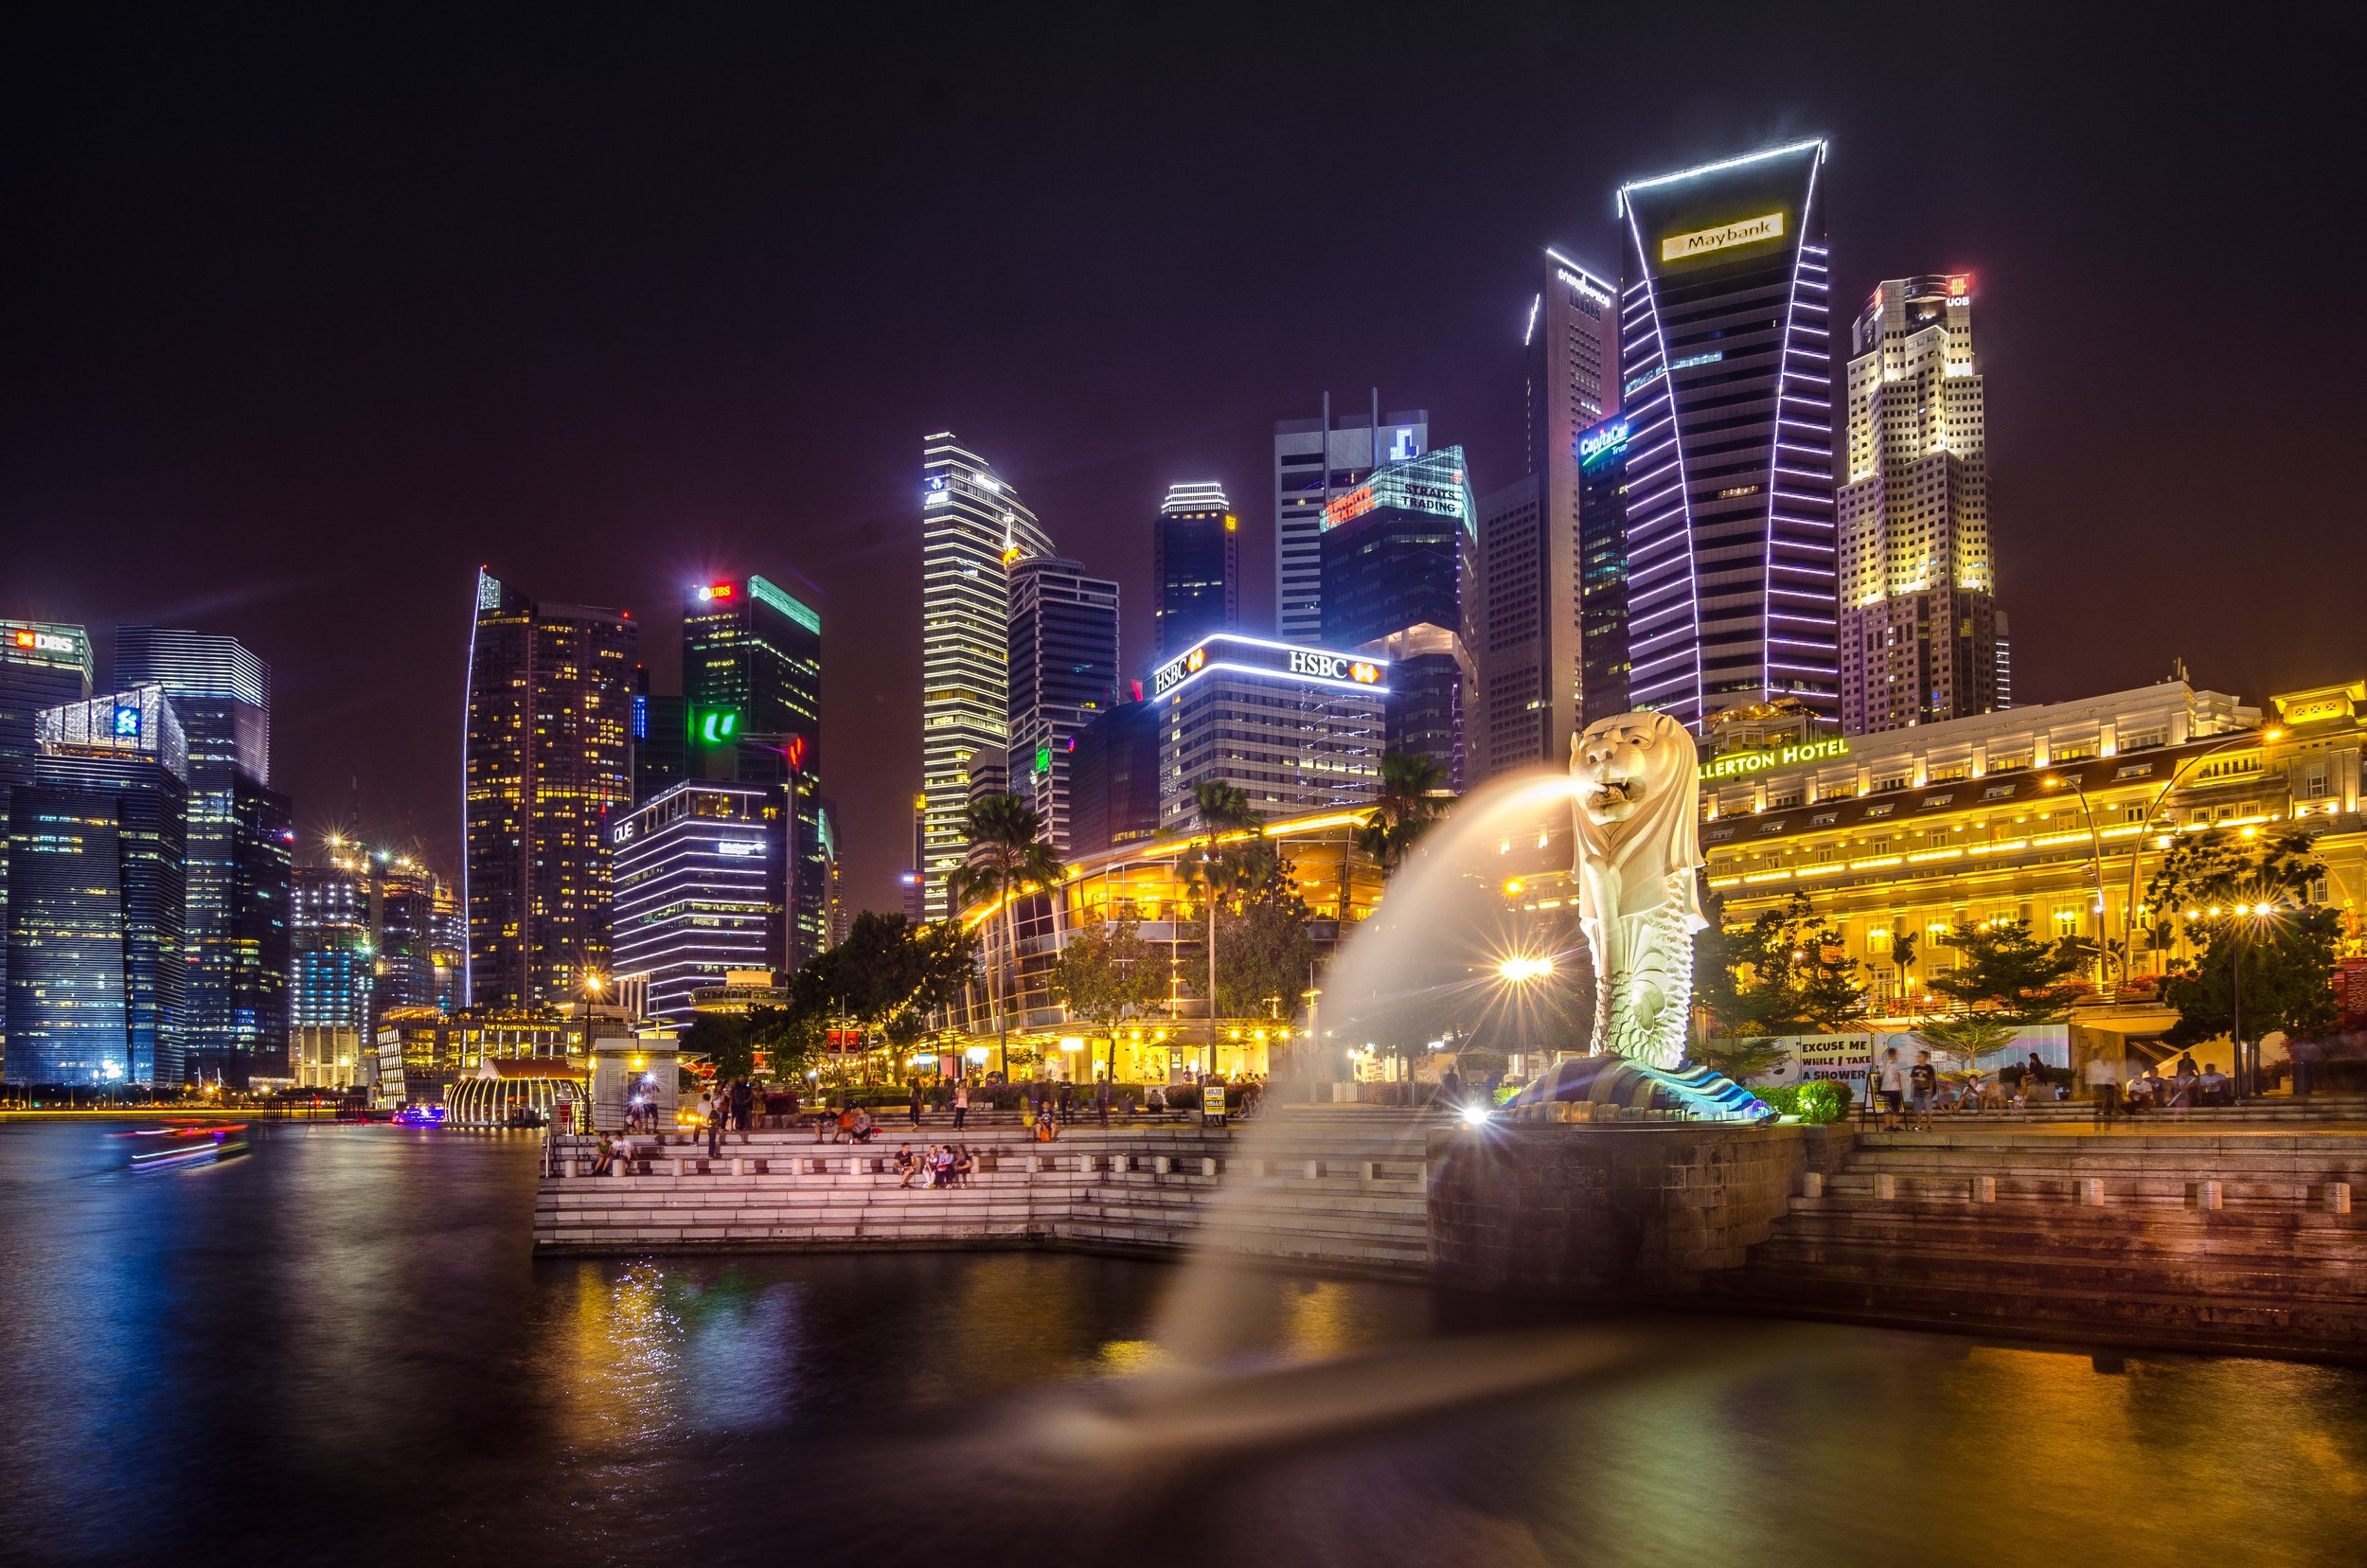 9 Day Singapore Tour with Golf & Tennis - April 19th - 28th 2020